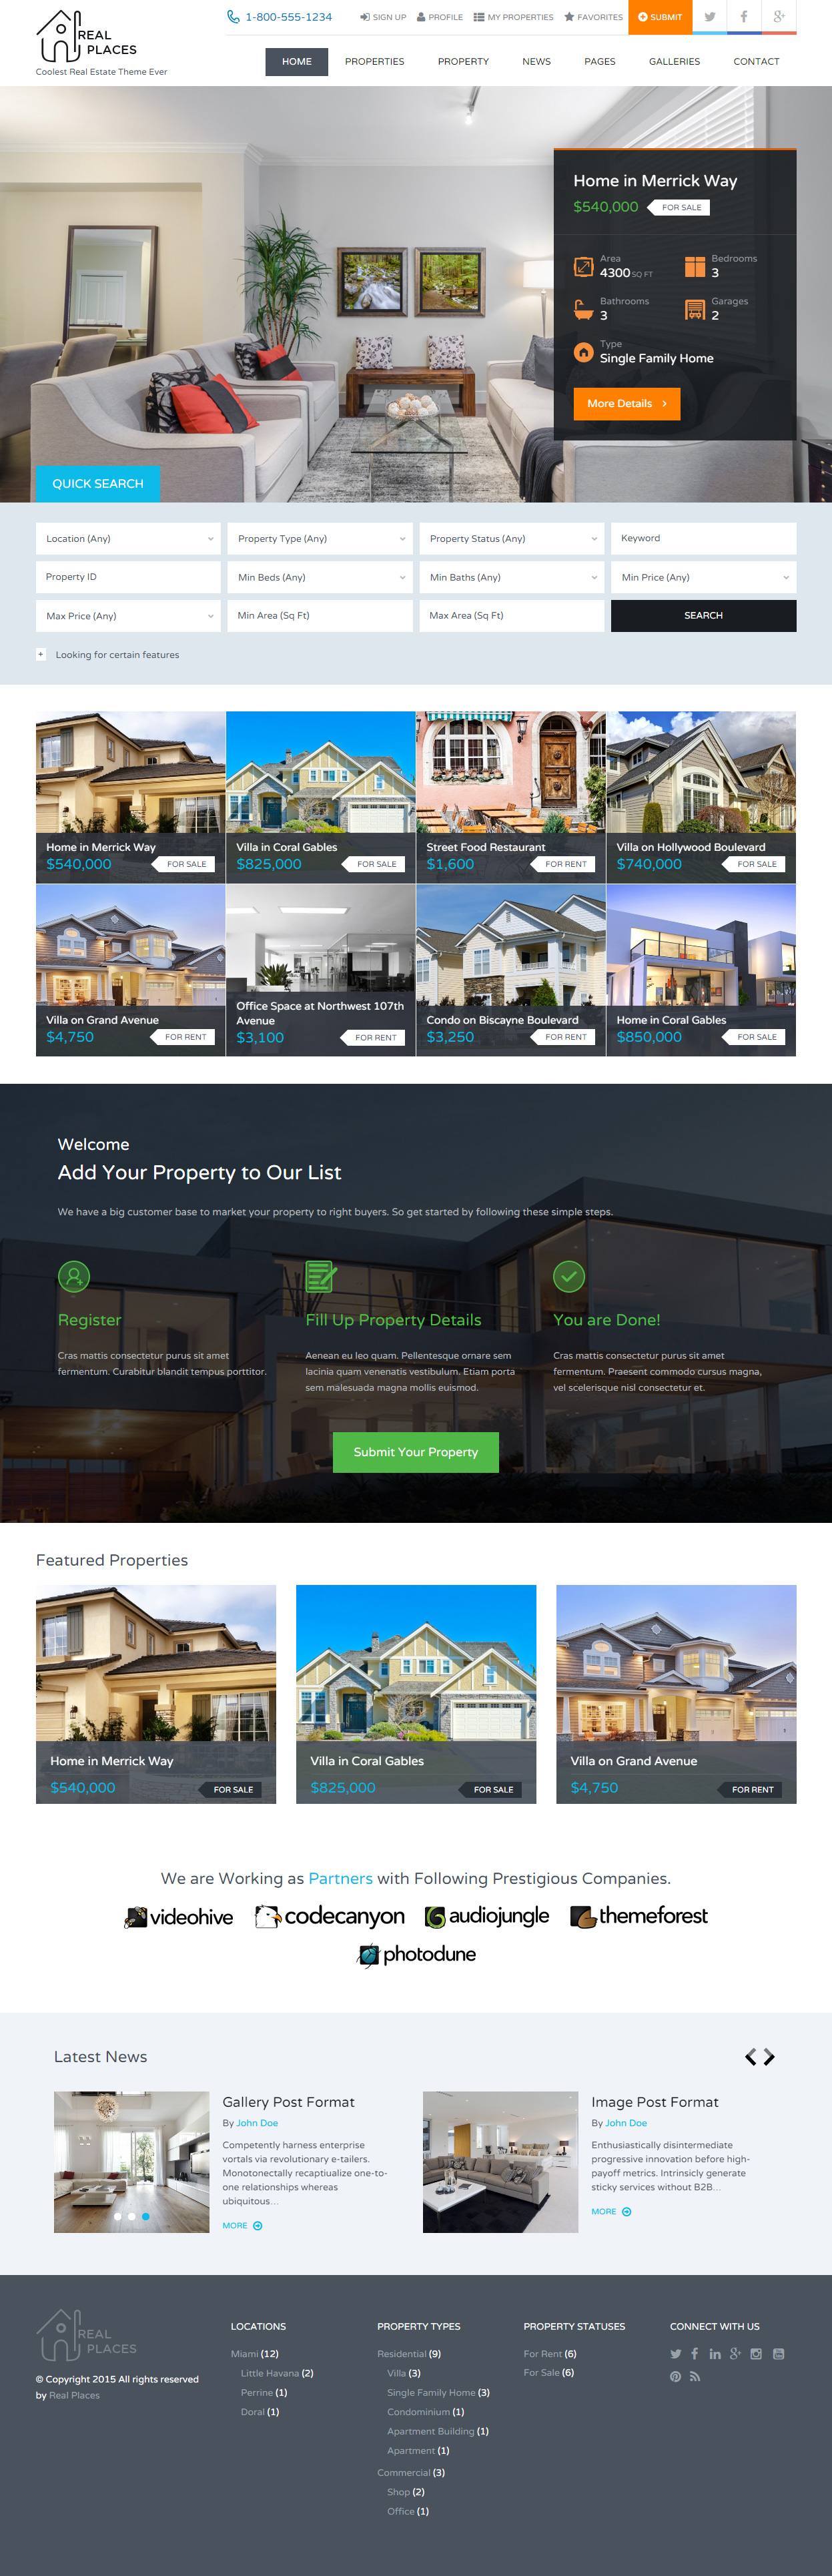 Real places is premium responsive real estate html5 template real places is premium responsive real estate html5 template retina ready flat design pronofoot35fo Gallery